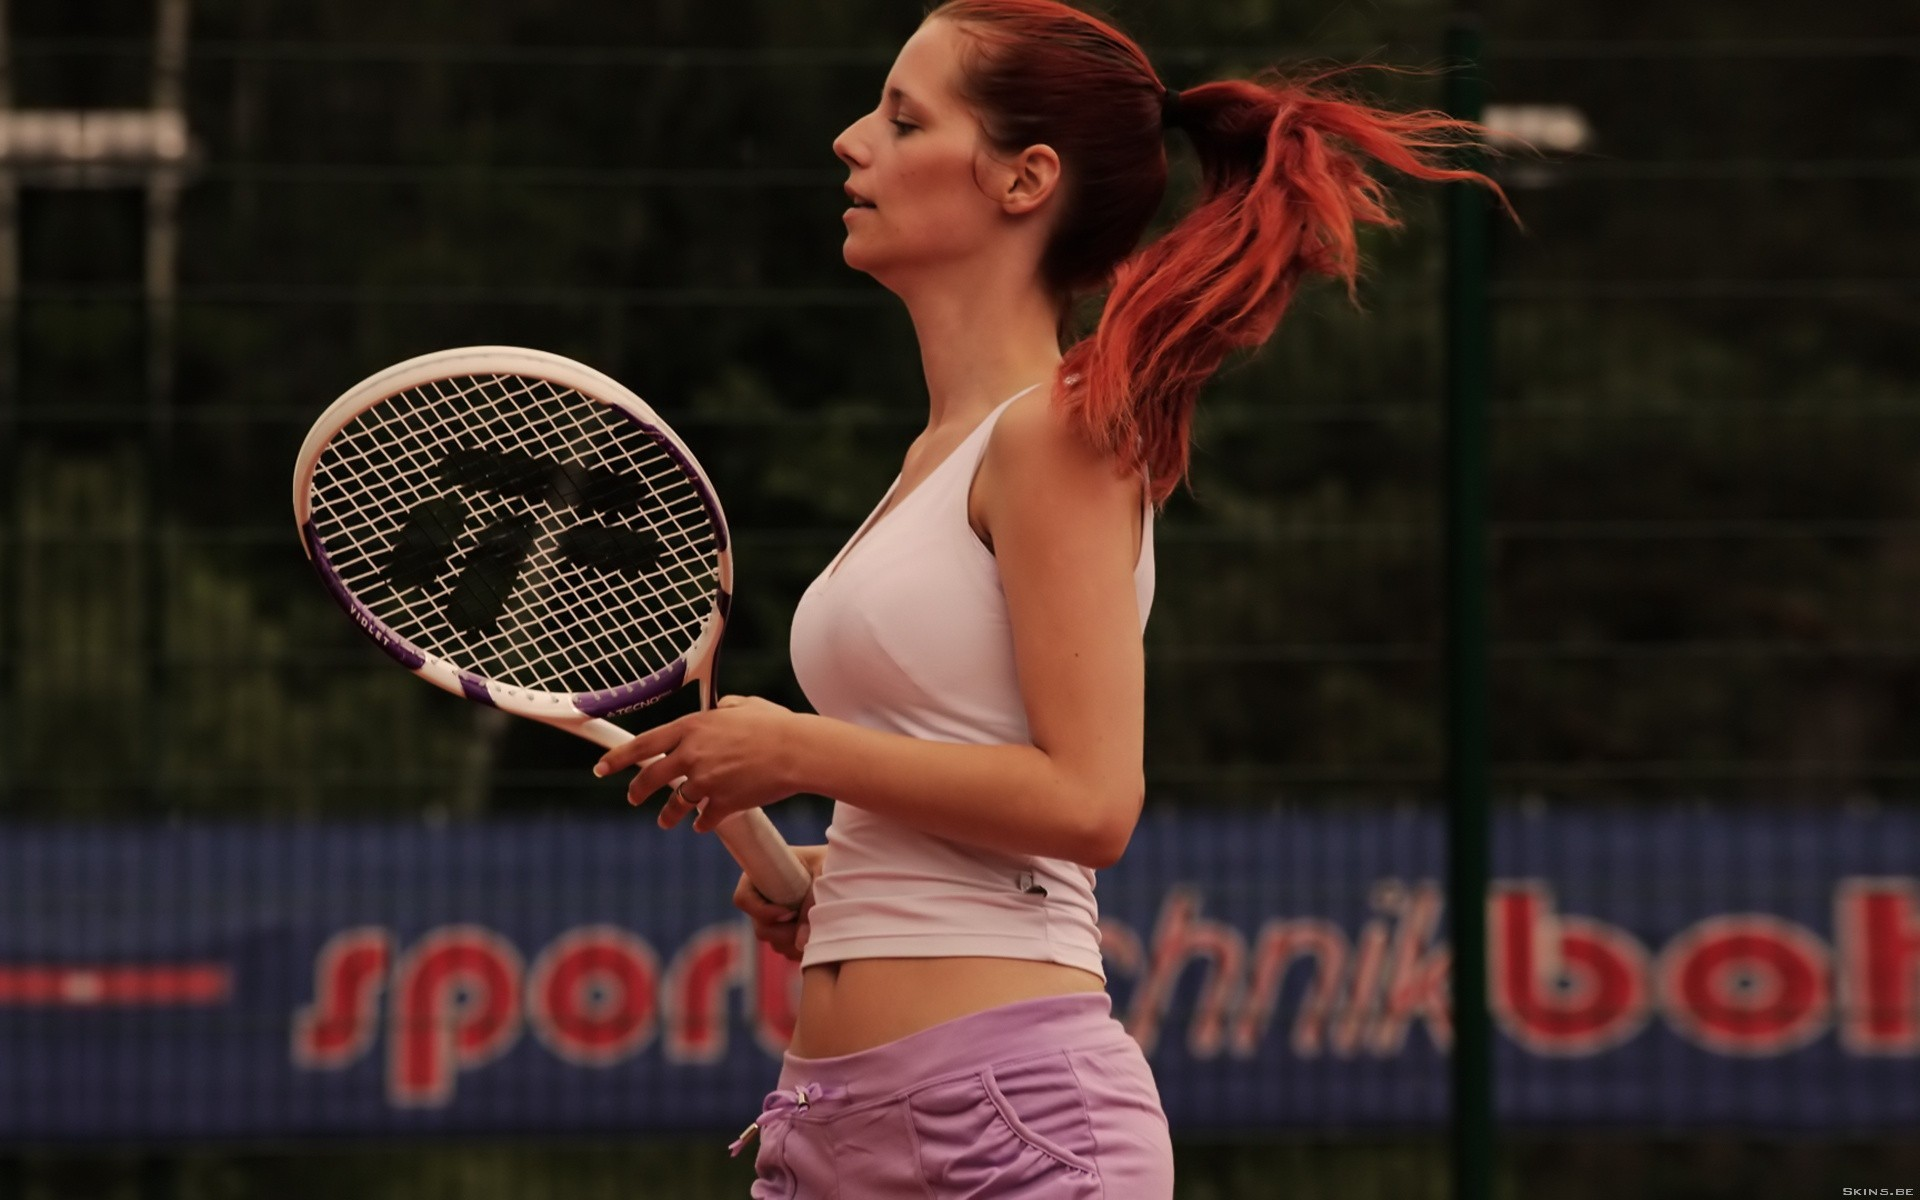 woman redheads Sports models HD Wallpaper